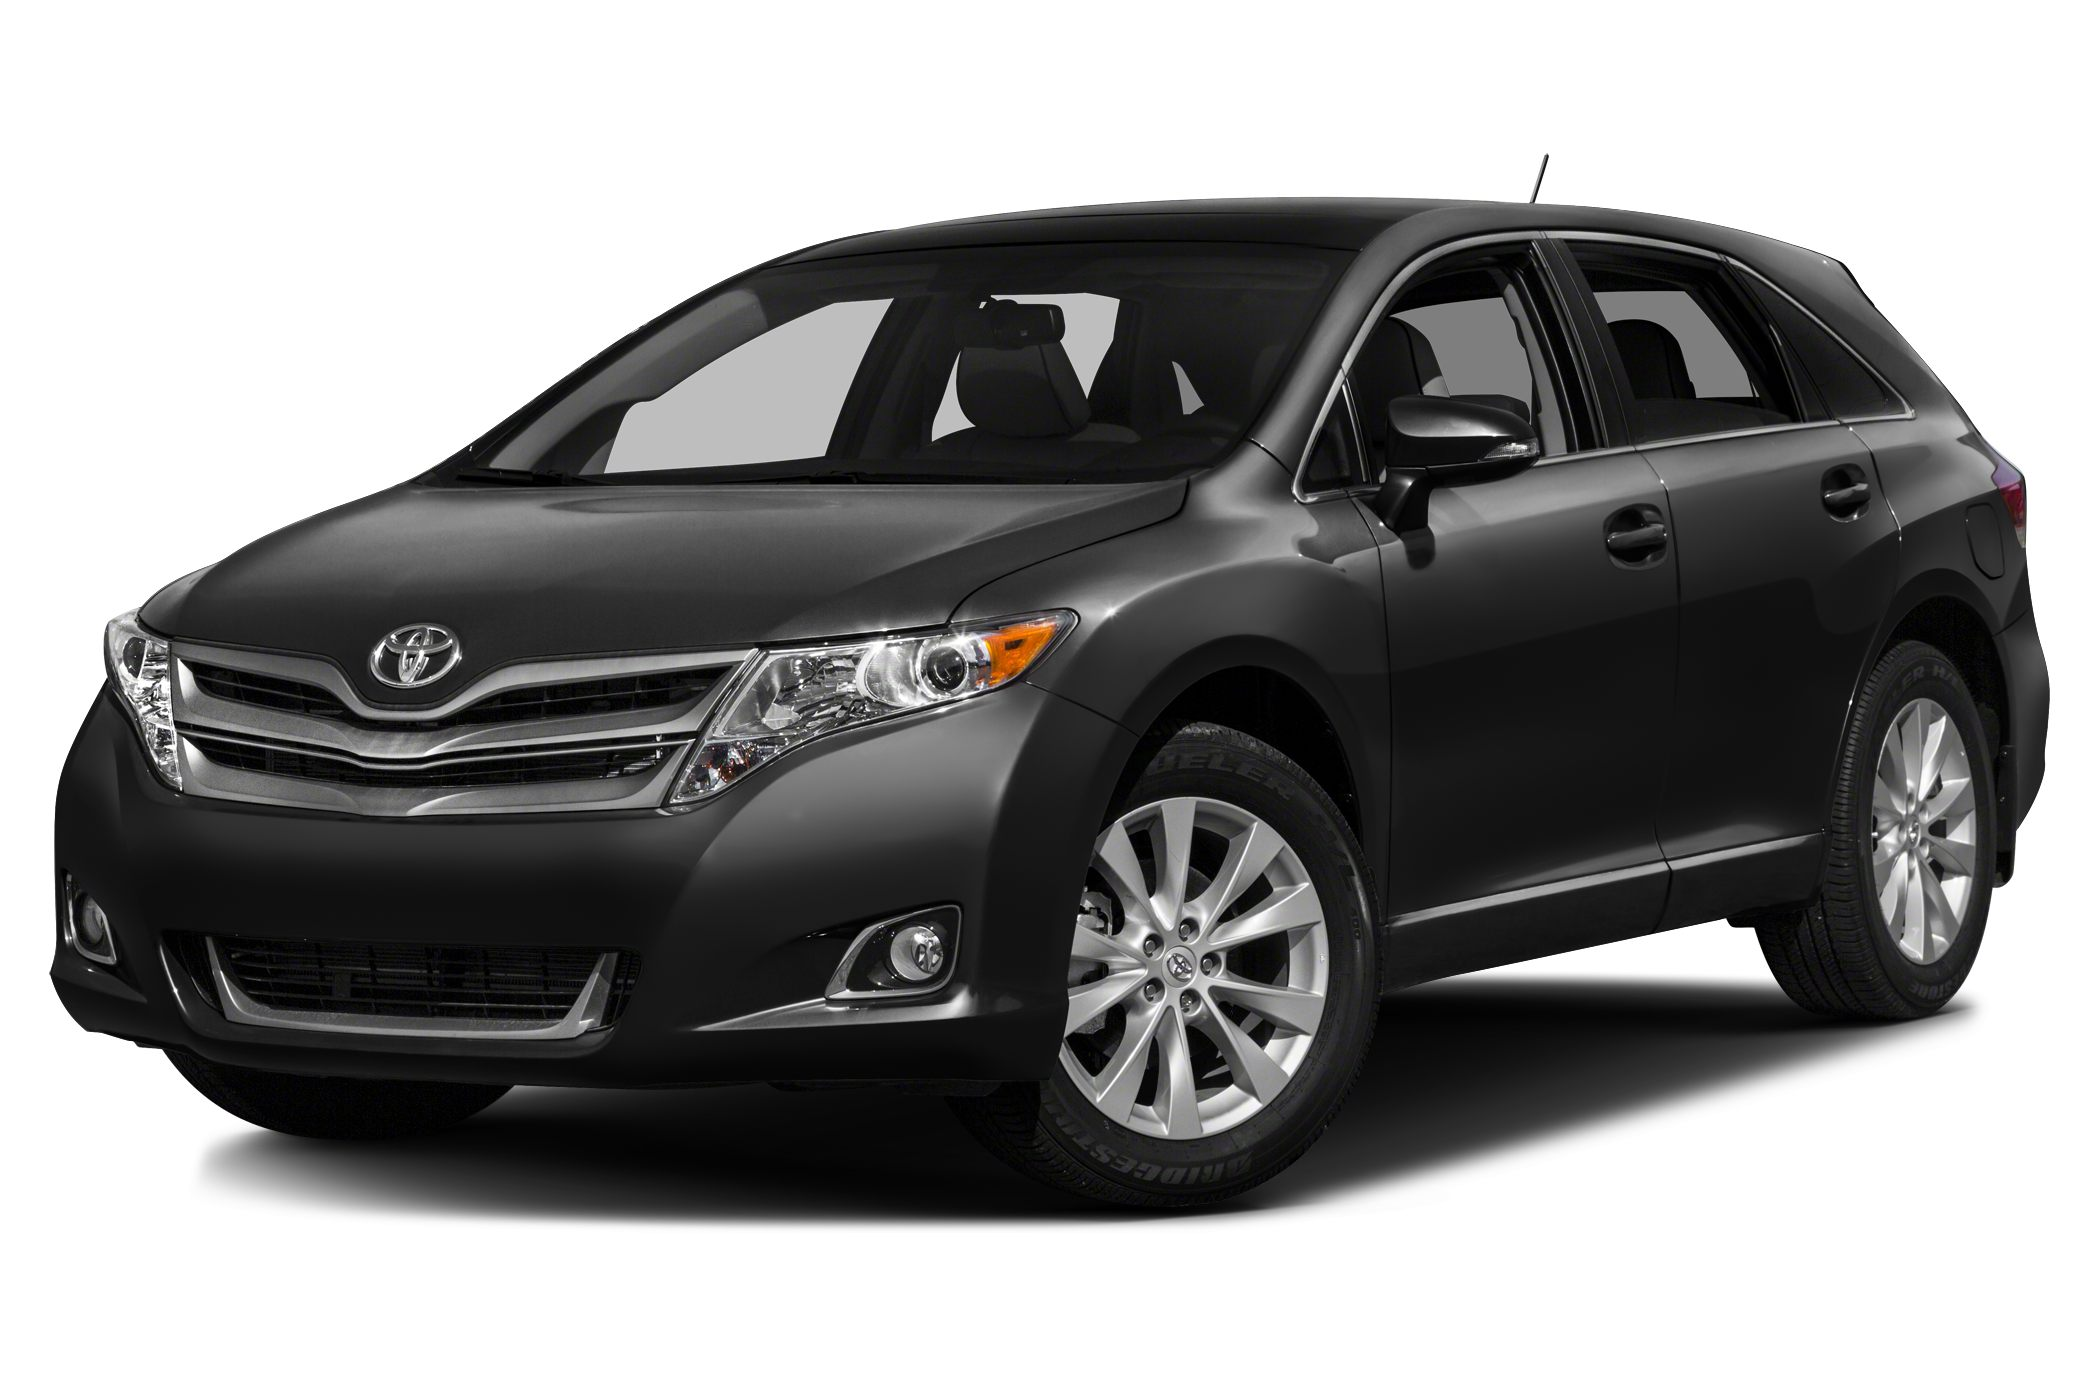 2013 Toyota Venza XLE FUEL EFFICIENT 25 MPG Hwy18 MPG City LOW MILES - 26048 NAV Heated Leath